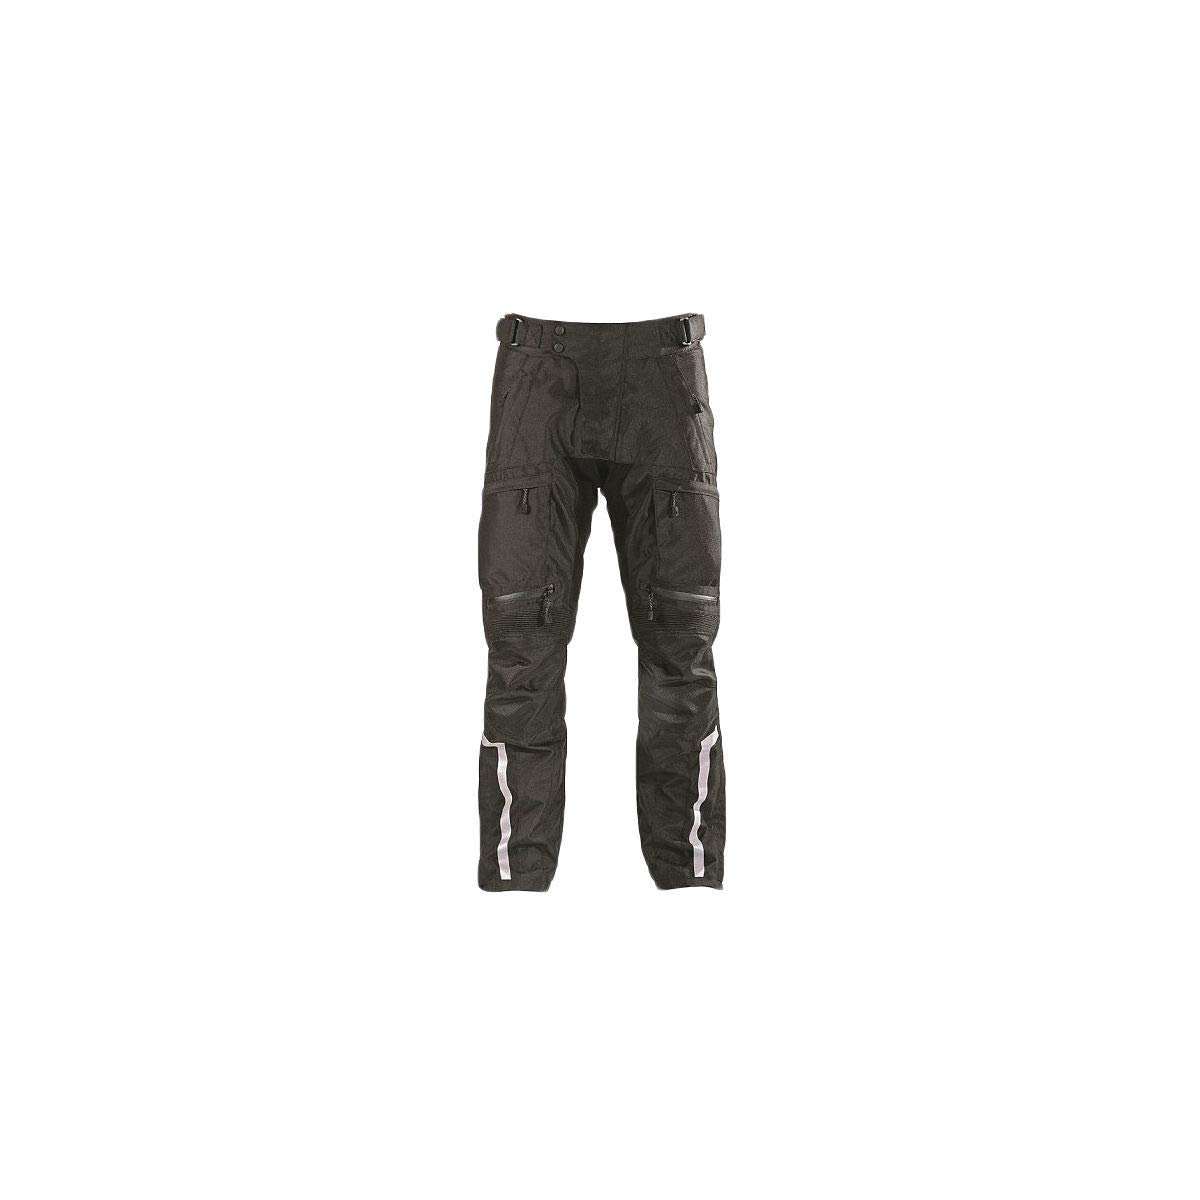 Motonation Apparel Phantom Tourventure Textile Pants Sand Medium